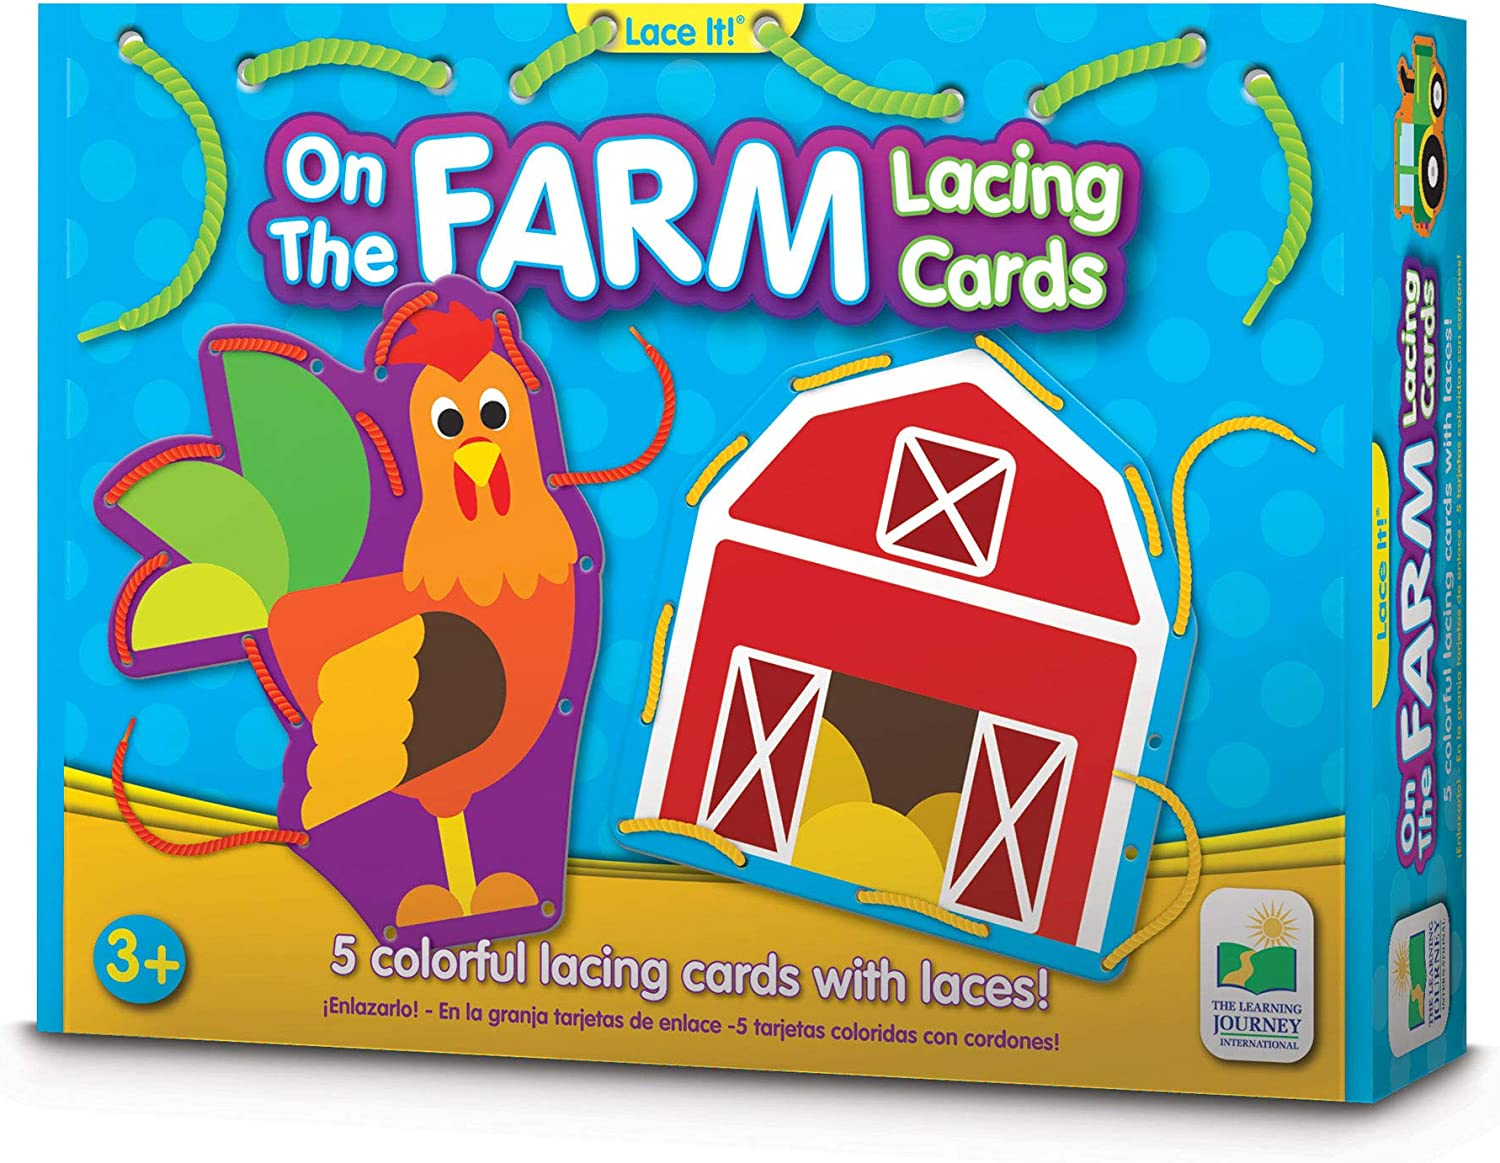 Preschool Toys /& Gifts for Boys /& Girls Ages 3 and Up On The Farm Lacing Cards The Learning Journey Lace It